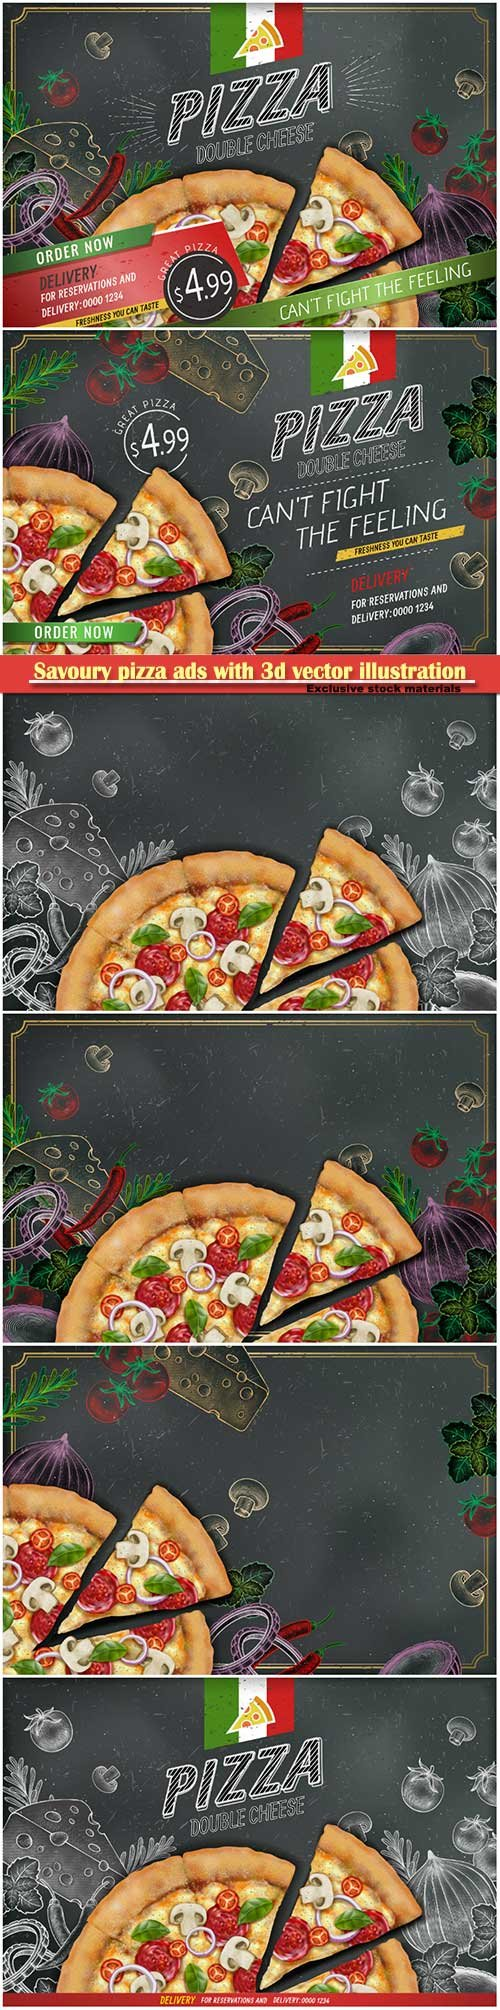 Savoury pizza ads with 3d vector illustration